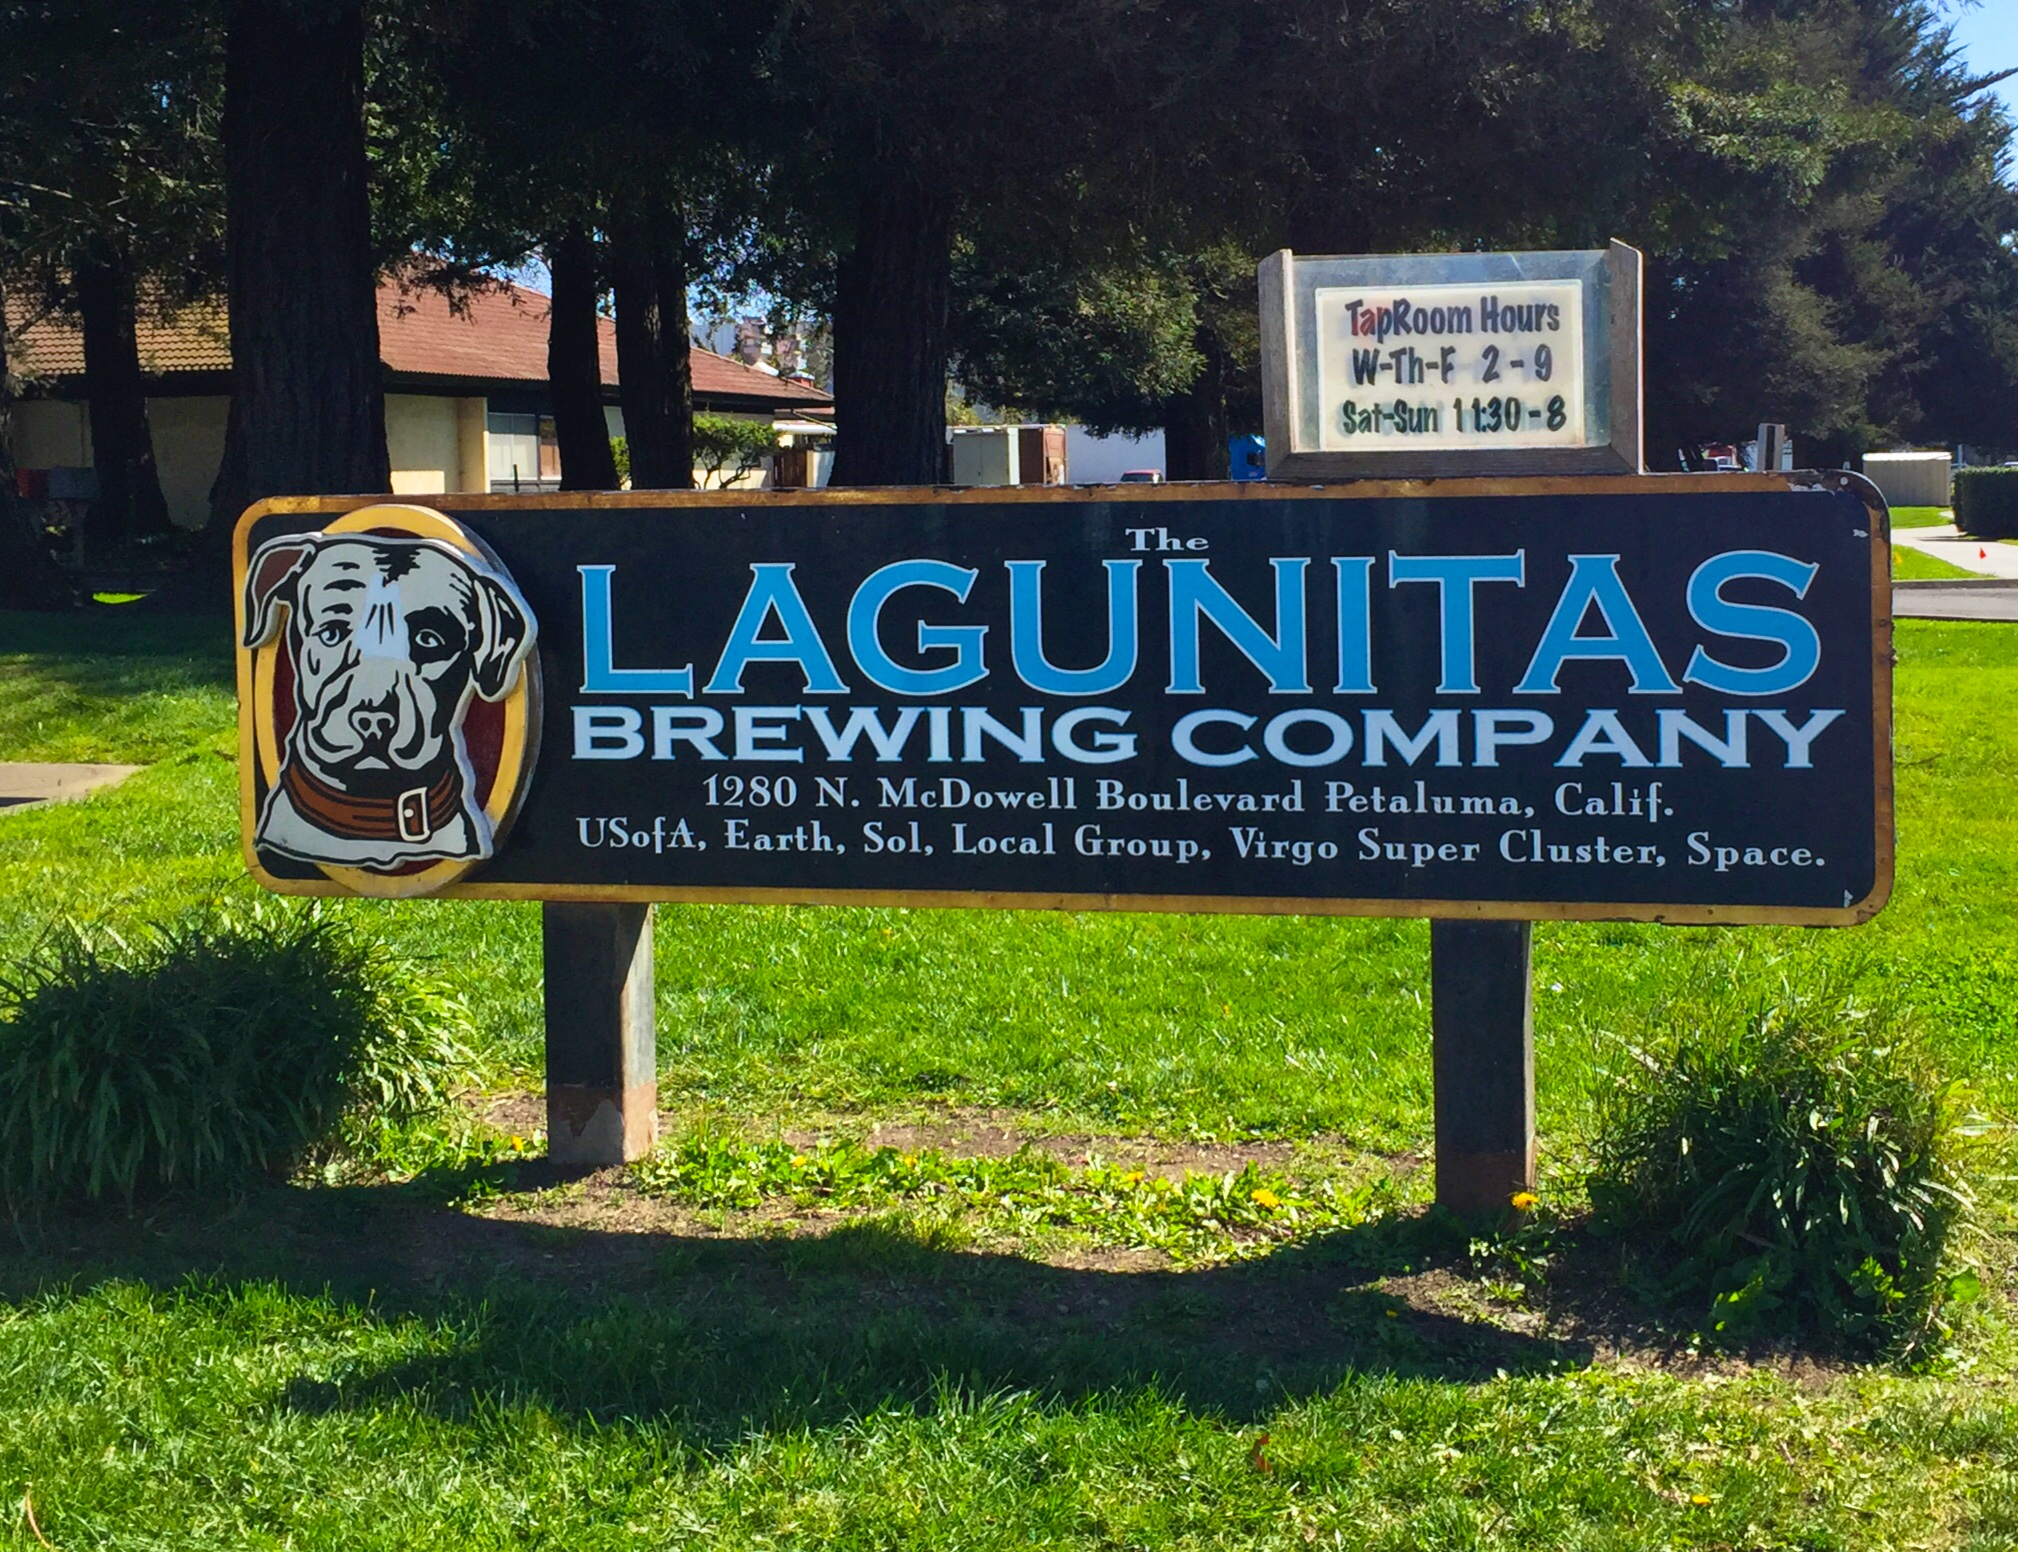 Lagunitas, Petaluma, CA, USA, Earth, Sol, Local Group, Virgo Super Cluster, Space.